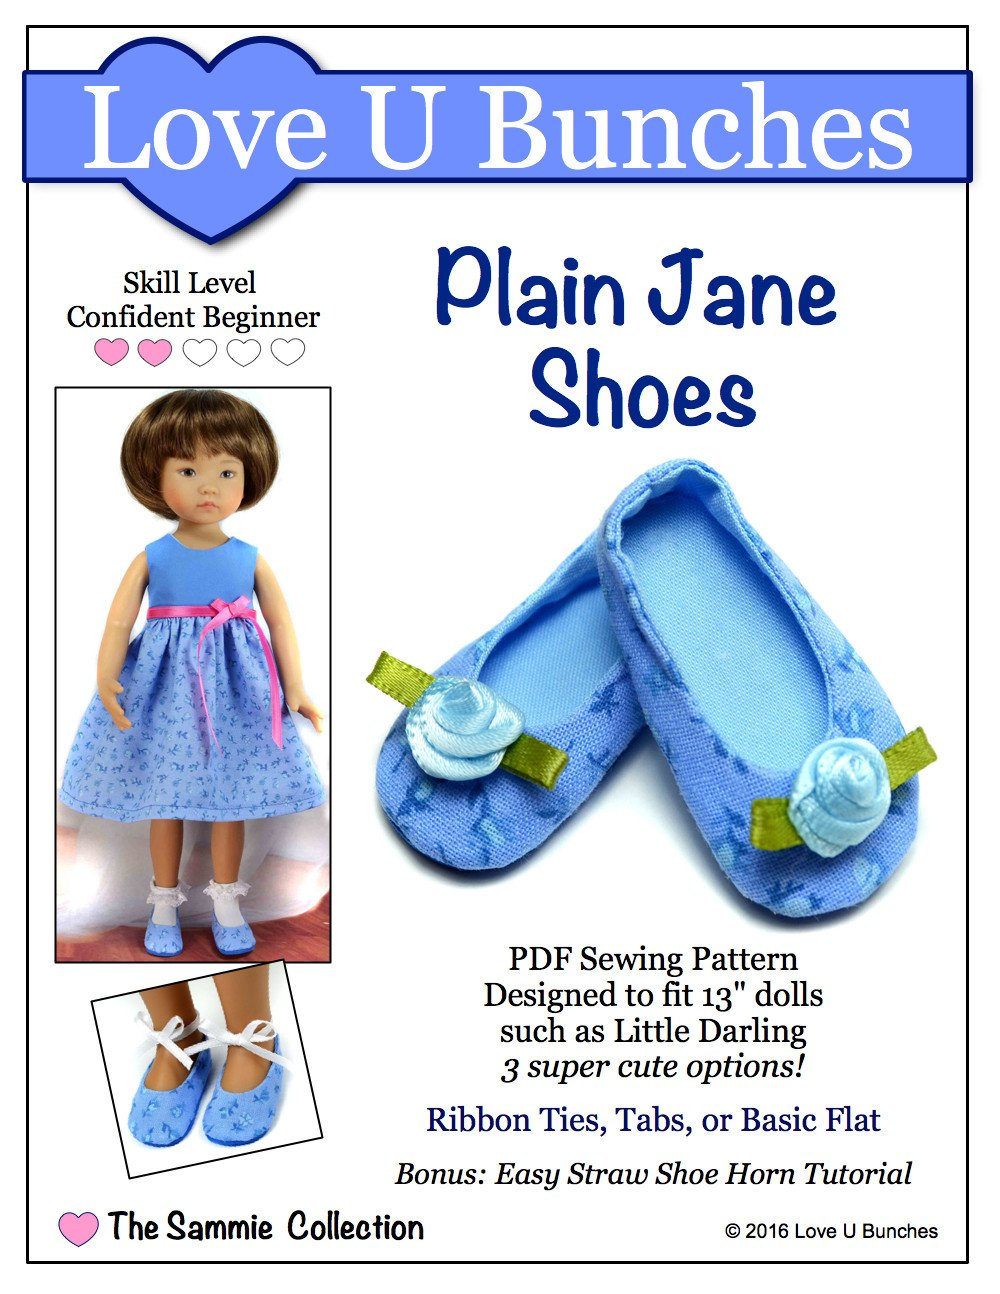 Plain Jane Shoes for Little Darling Dolls